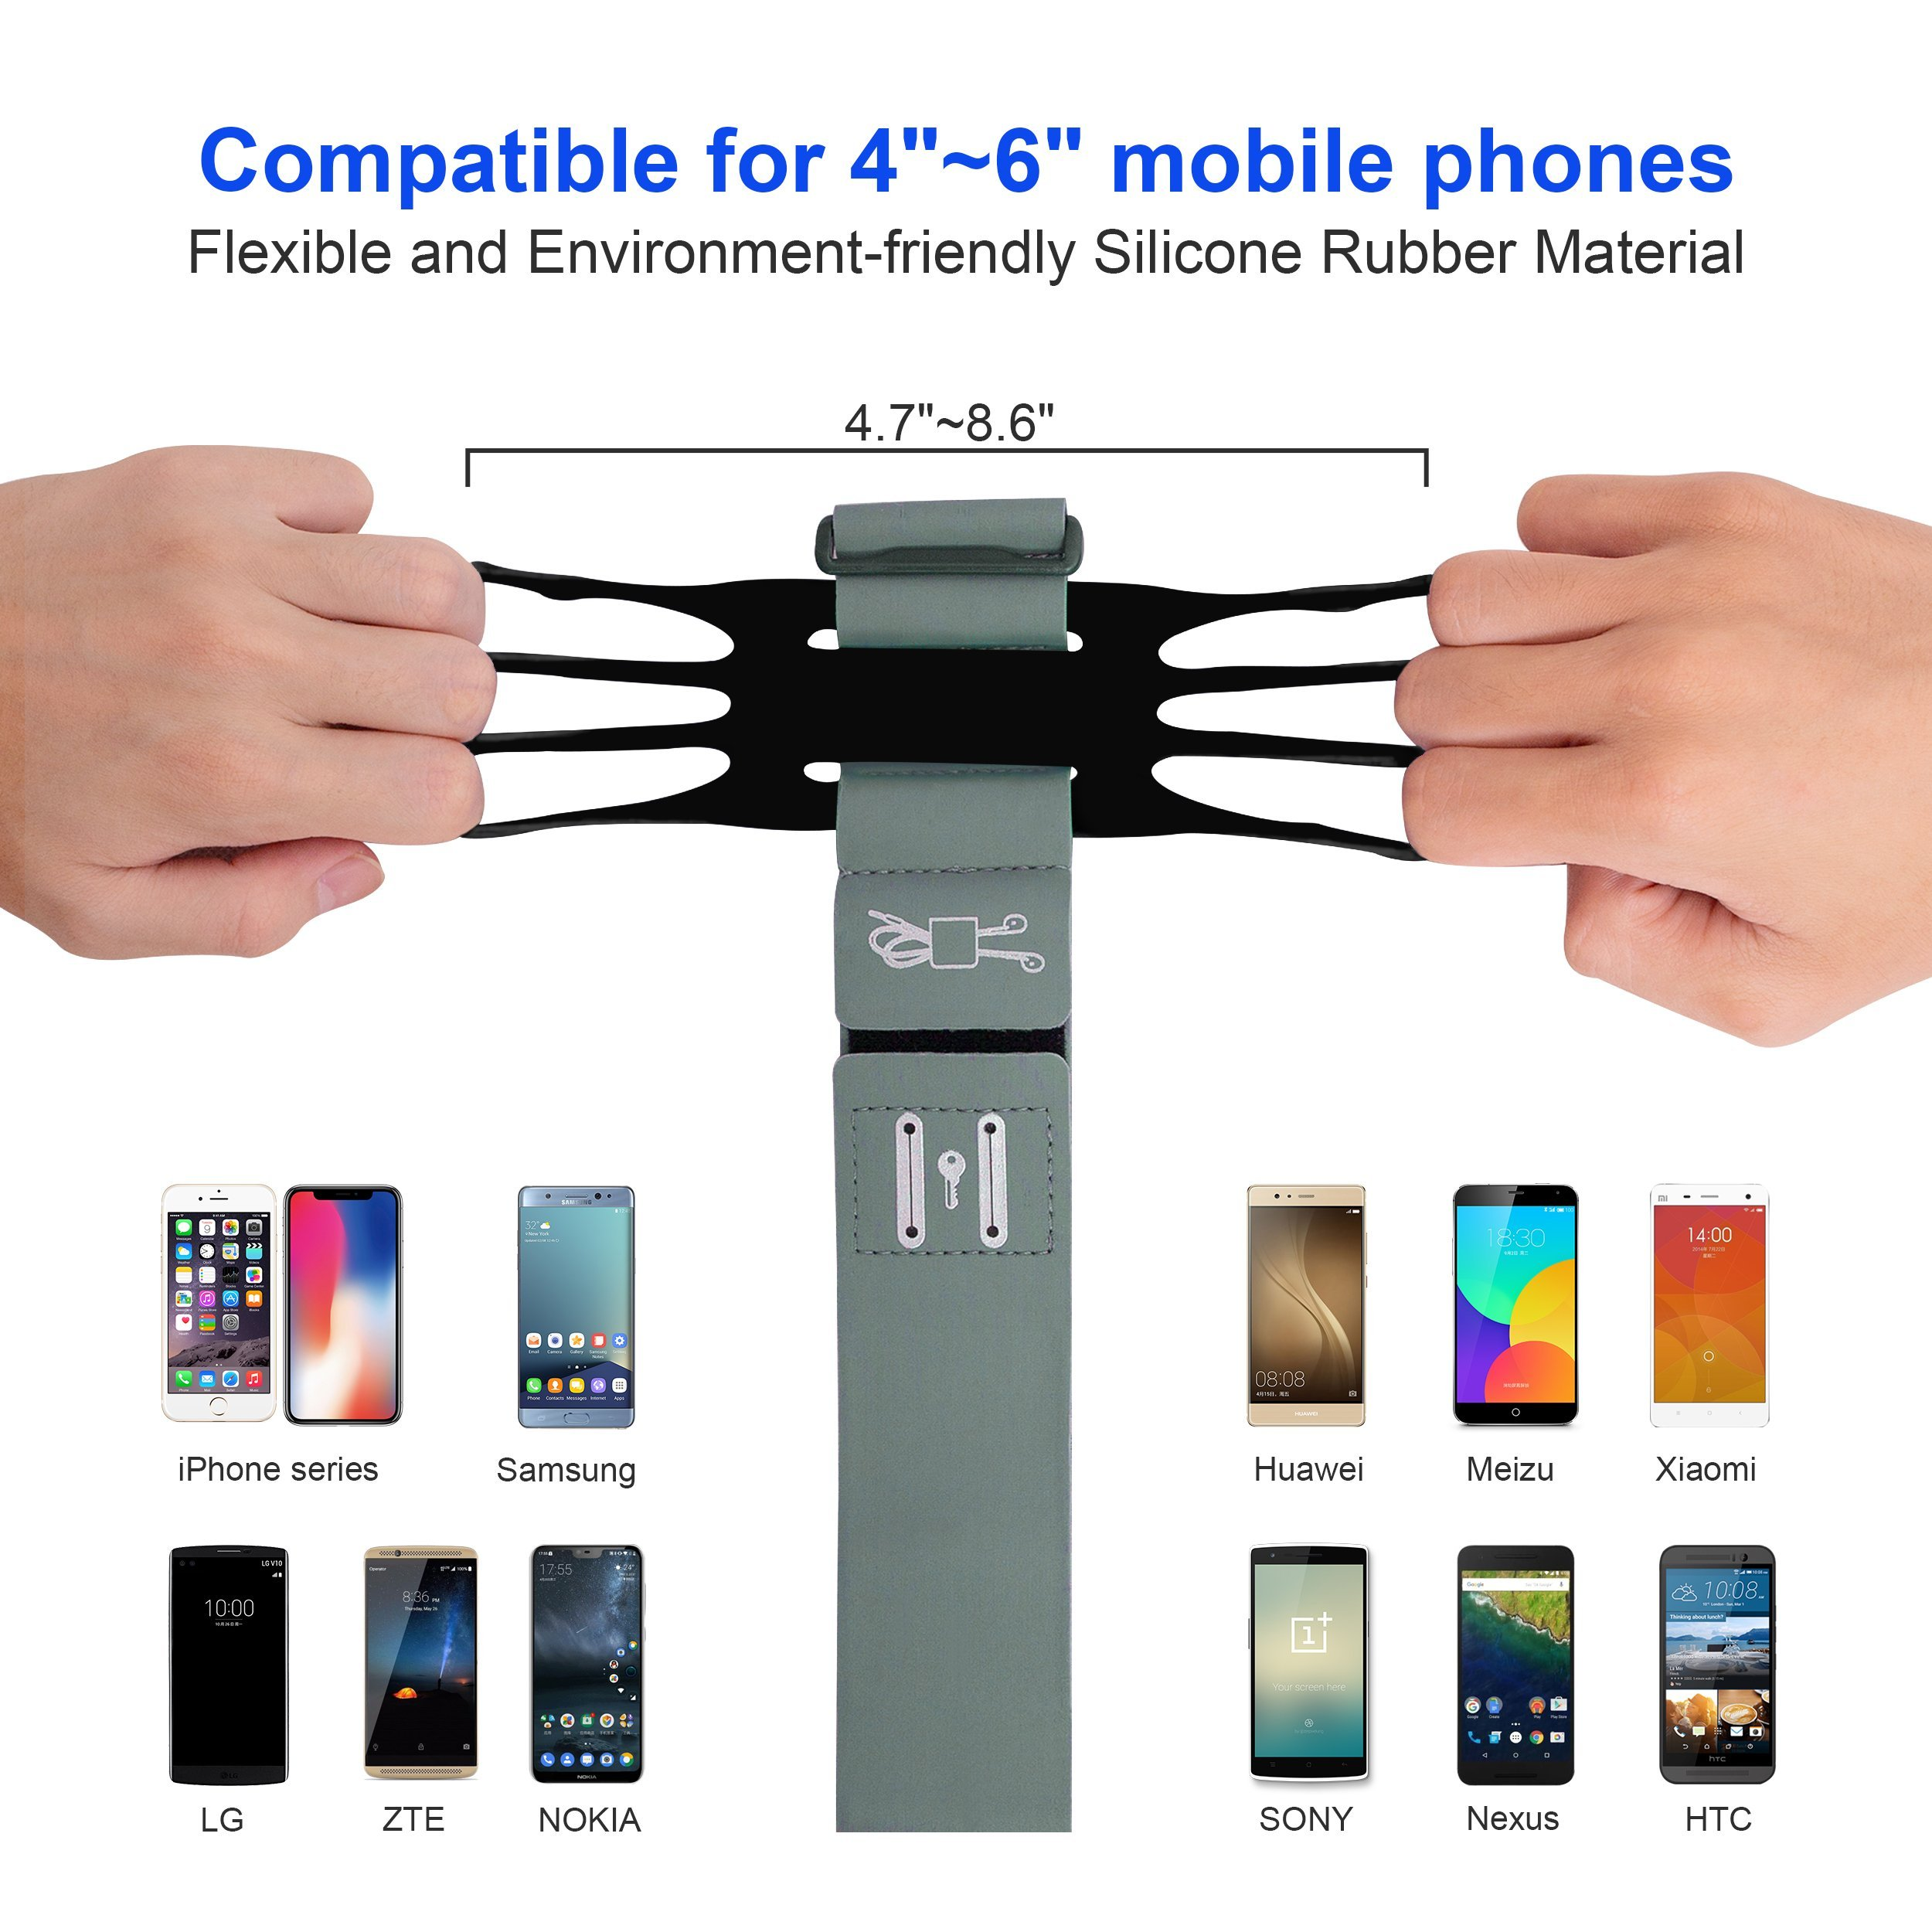 Running Armband for iPhone X/iPhone 8 Plus/ 8/7 Plus/ 6 Plus/ 6, Galaxy S8/ S8 Plus/ S7 Edge, Note 8 5, Google Pixel with Key Holder Phone Armband for Hiking Biking Walking Running(Black) by CICO (Image #2)